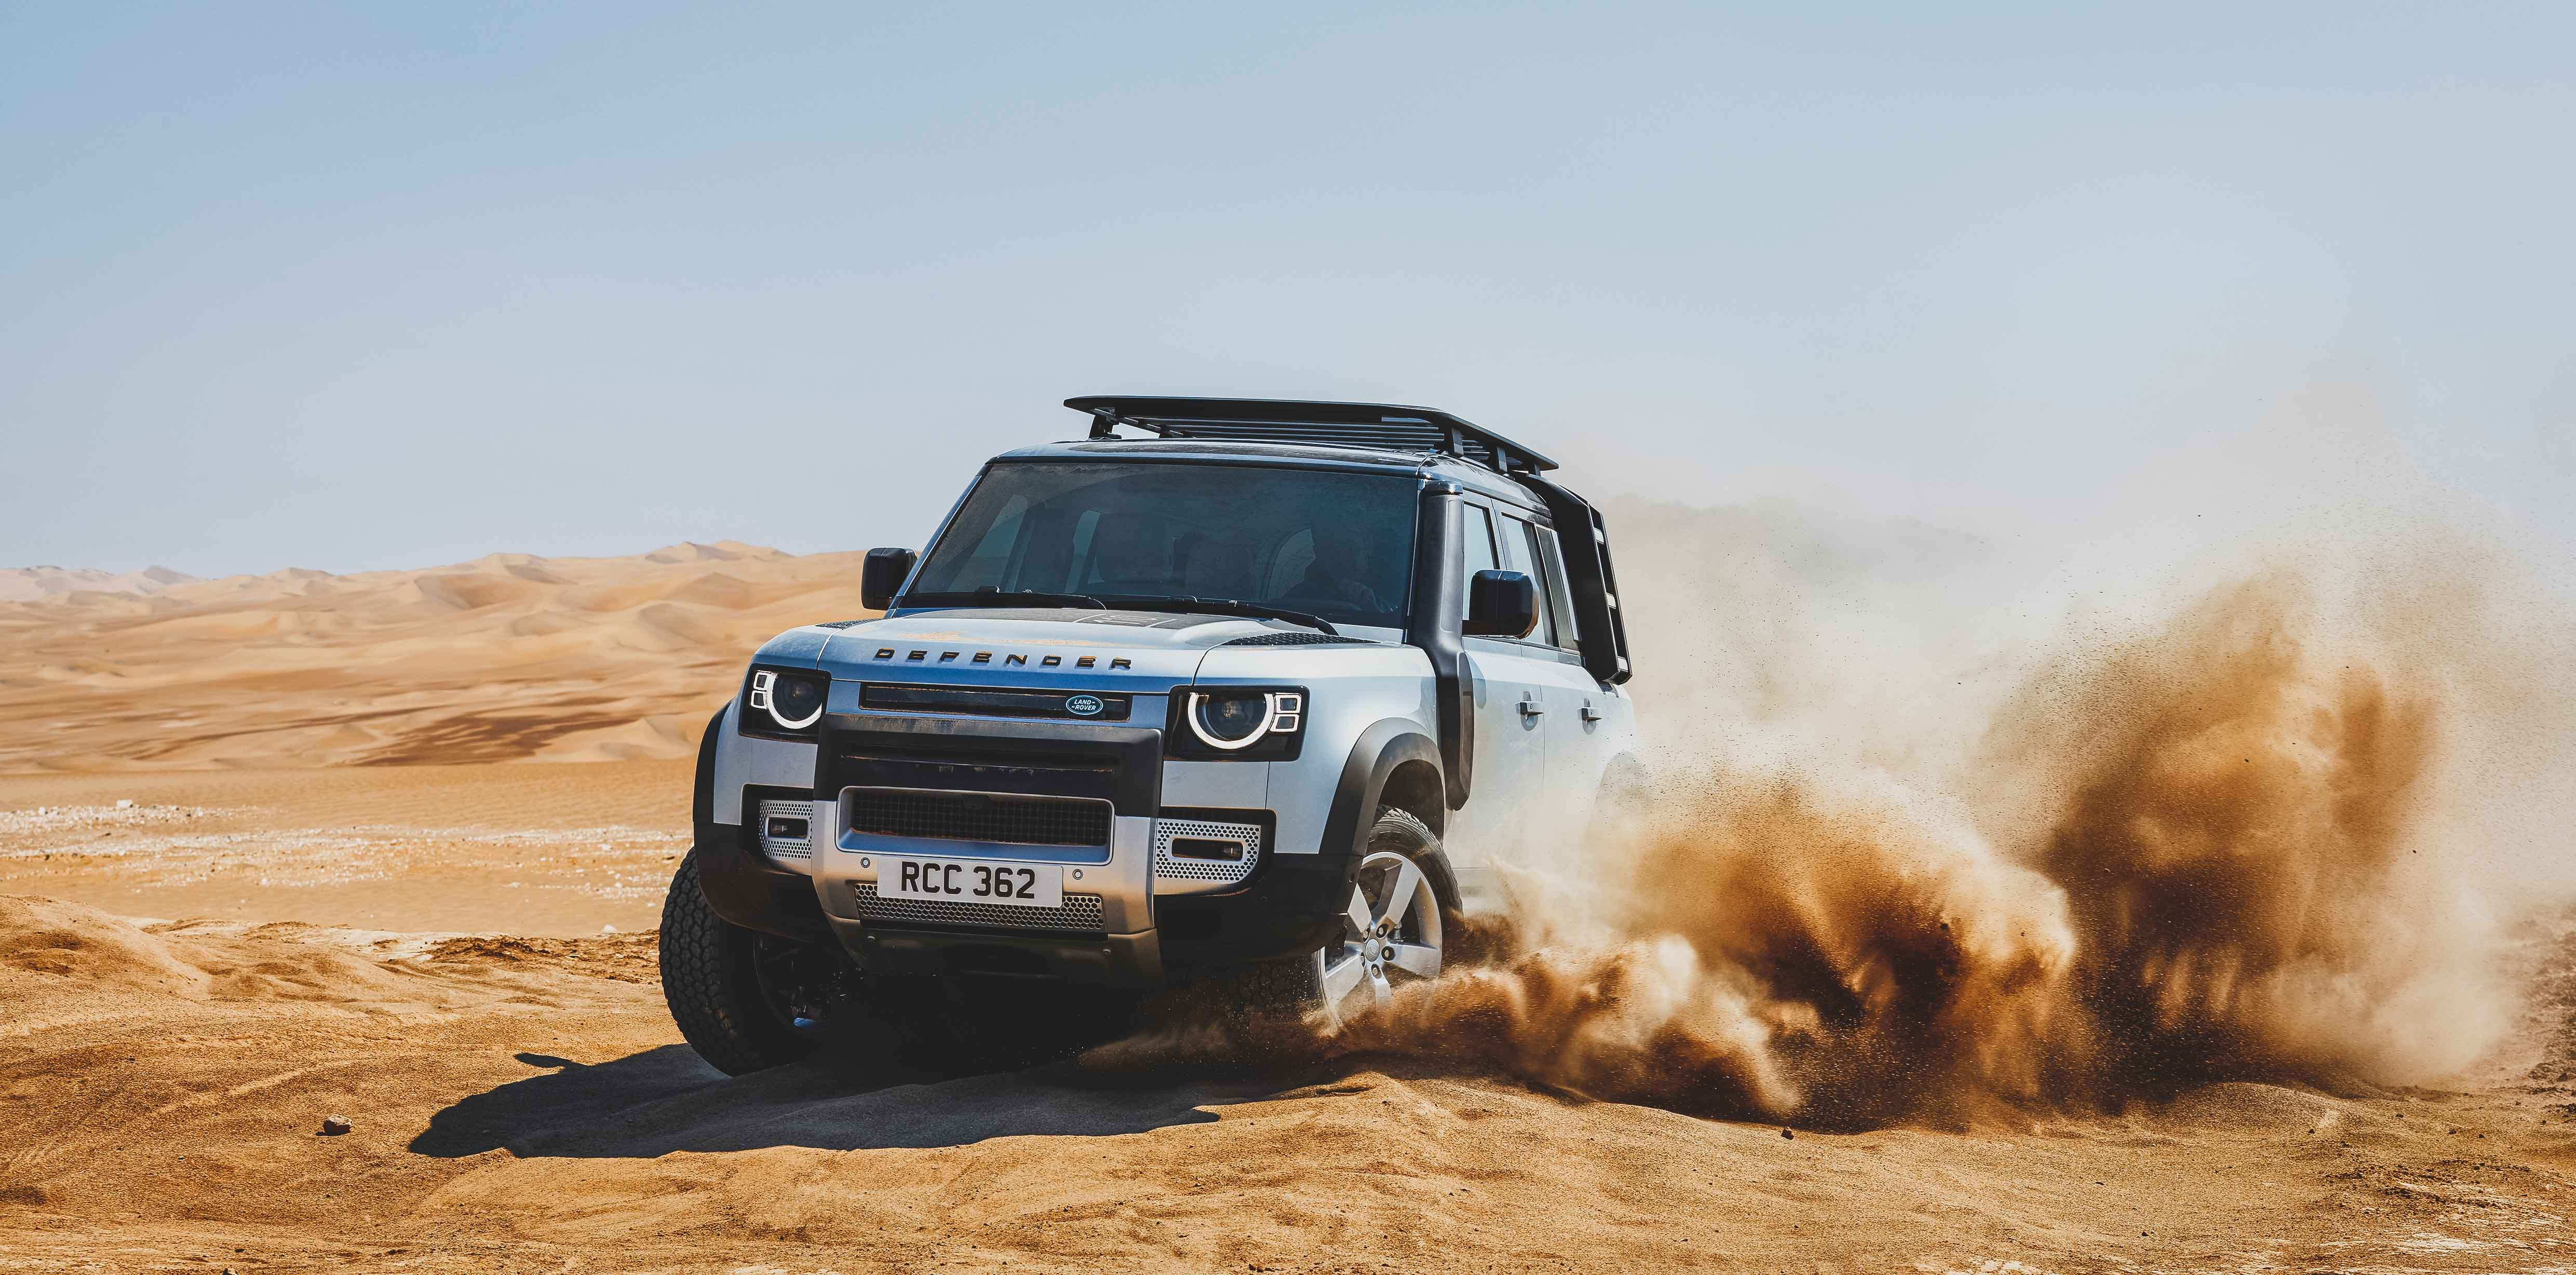 The New Defender Takes On the World